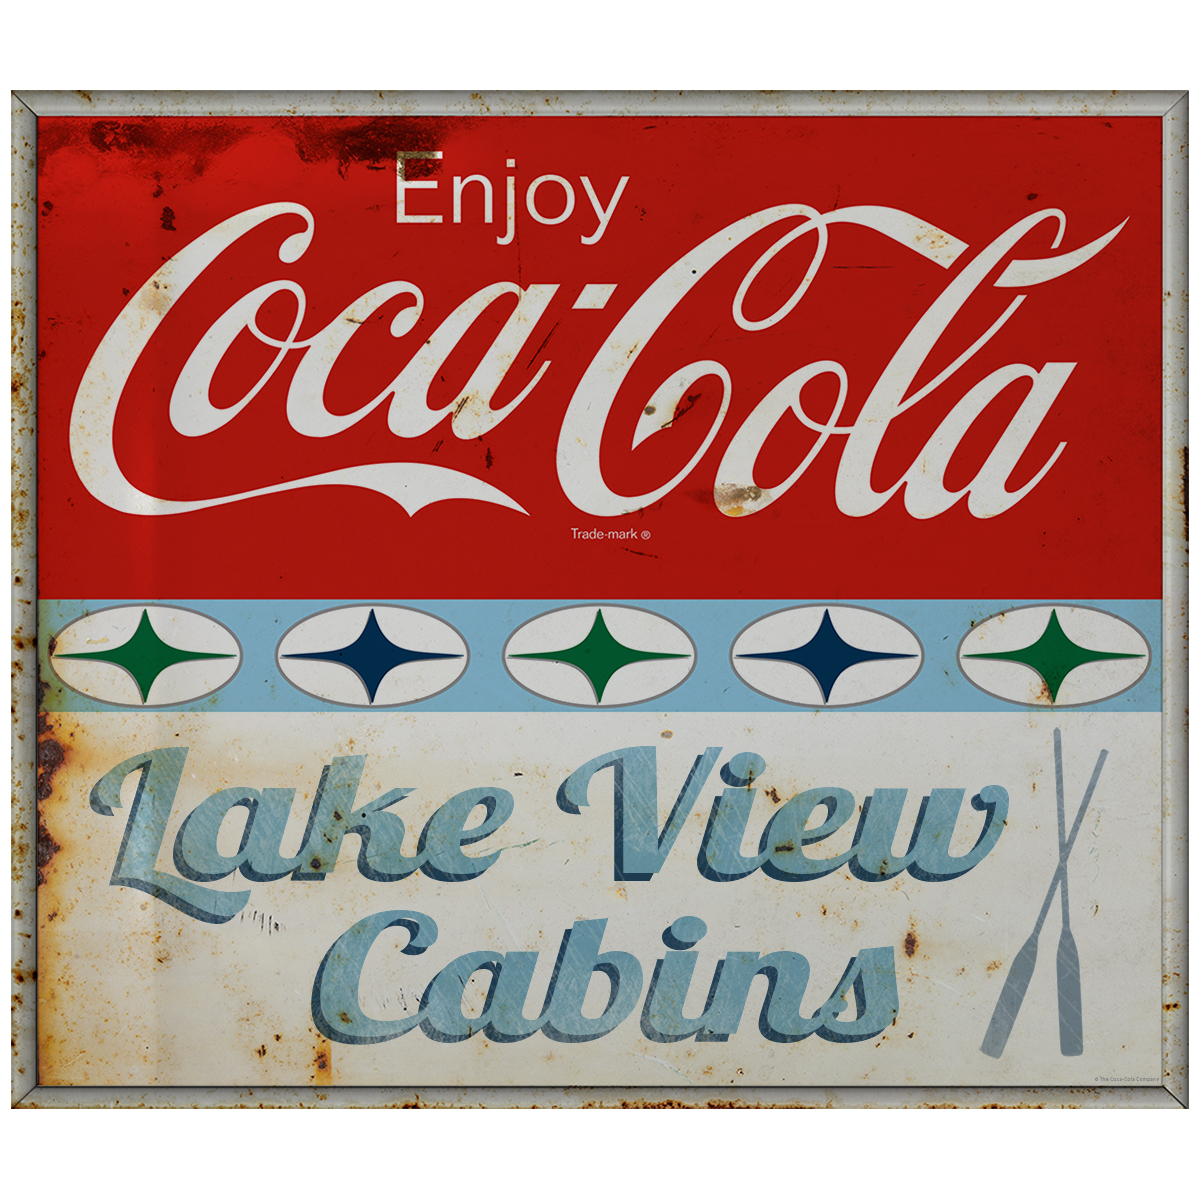 Enjoy Coca-Cola Lake View Cabins Decal 1960s Roadside